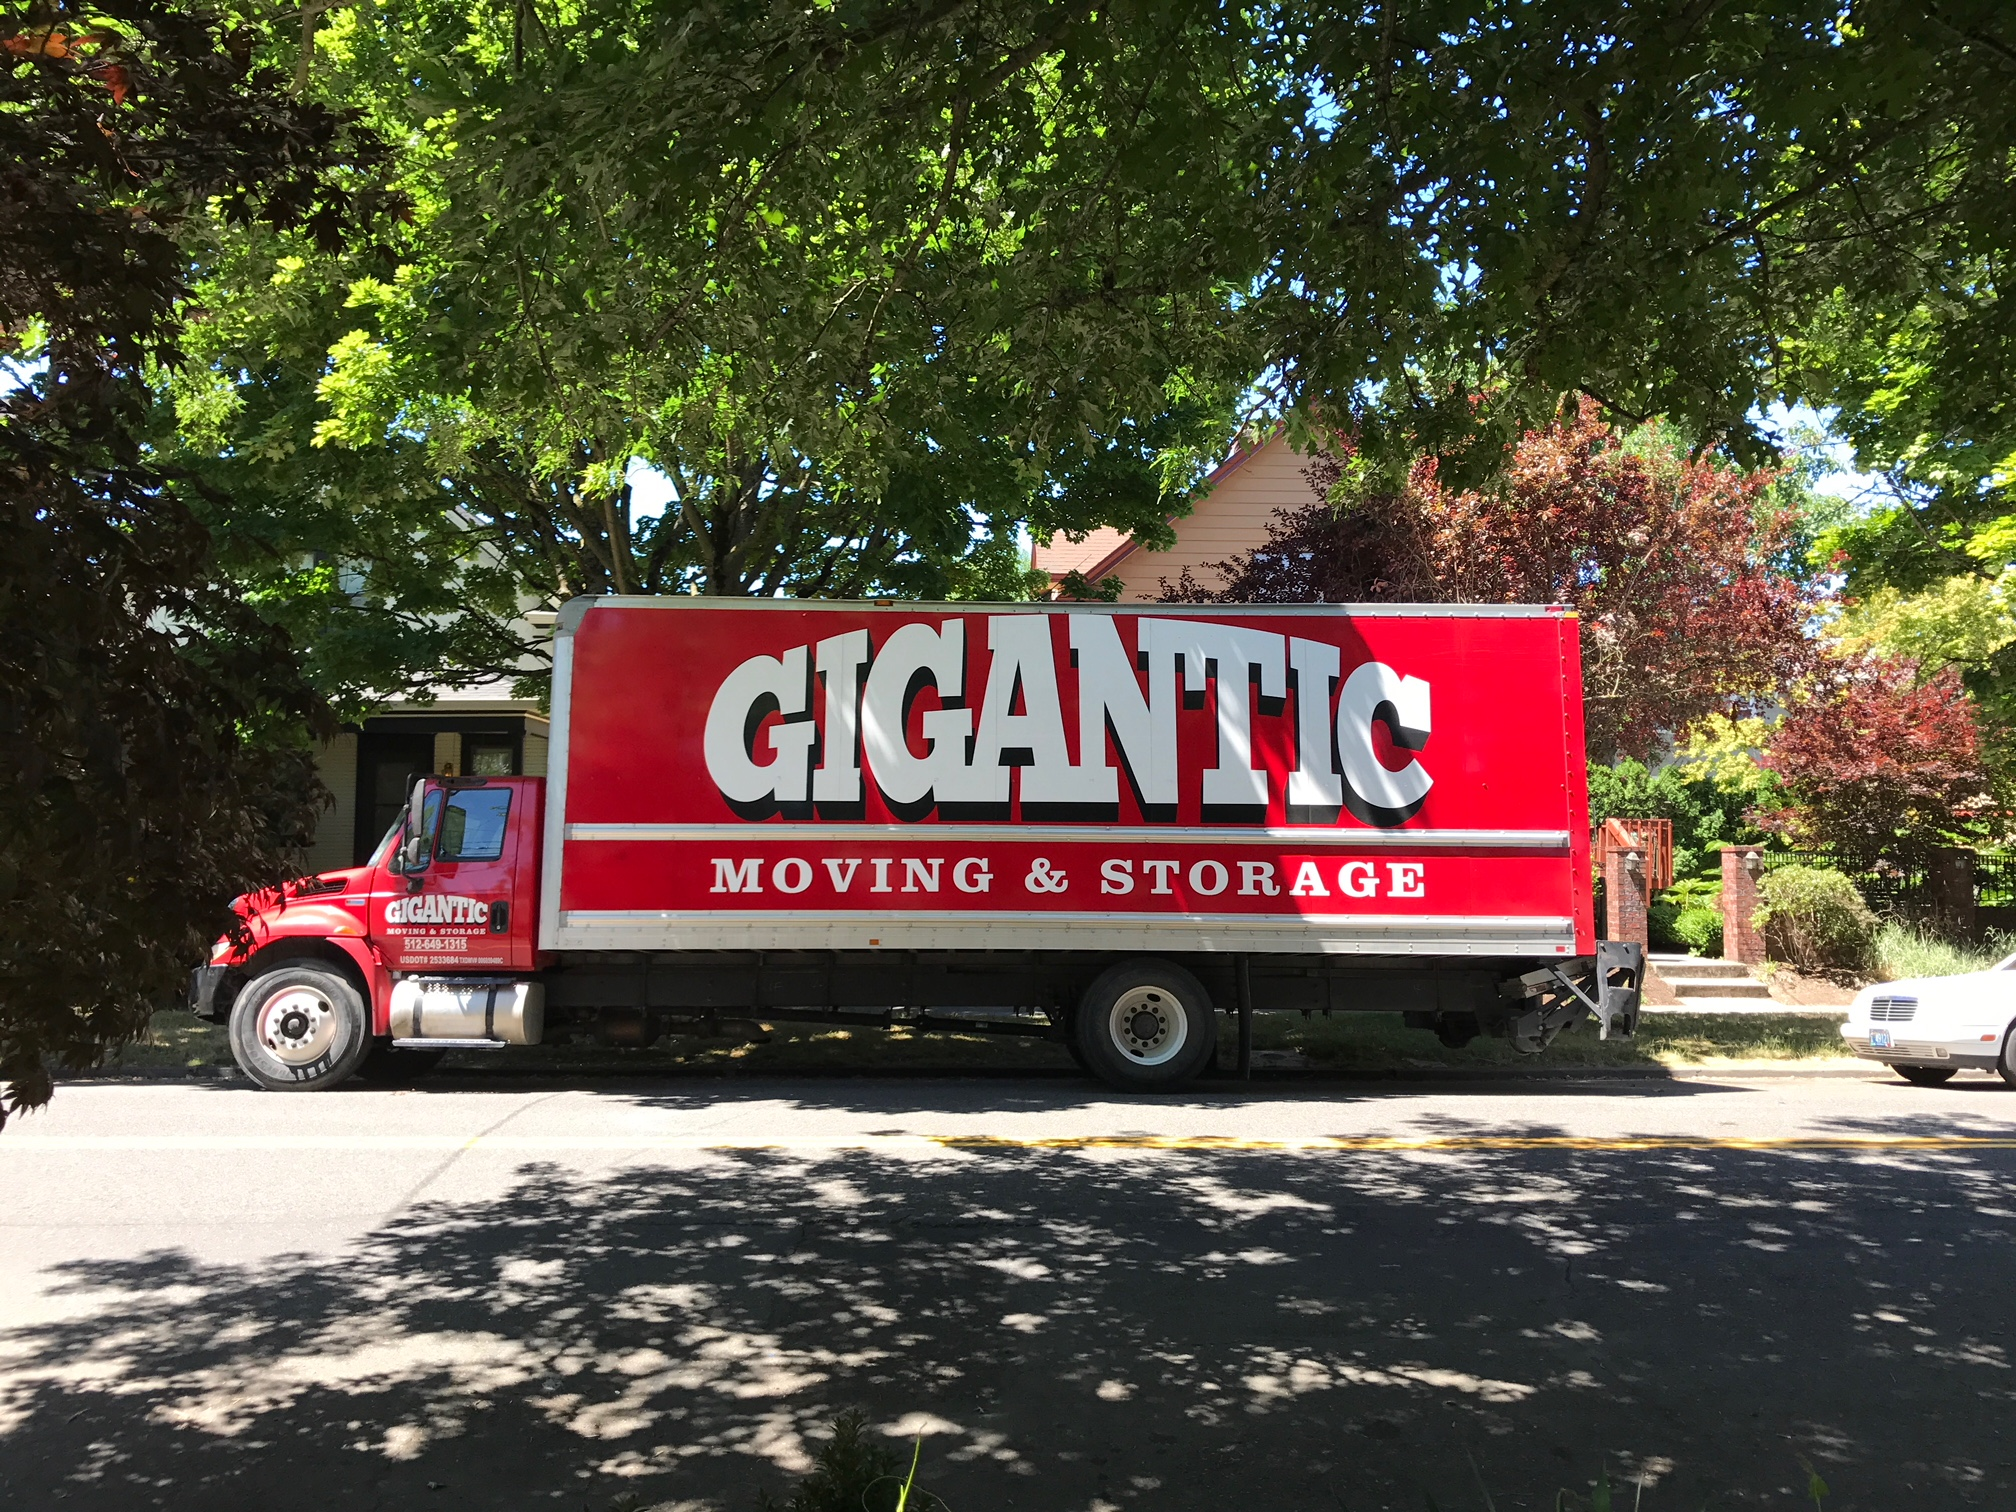 The new fleet of trucks for Gigantic Brewing & Moving. (photo by Kerry Finsand)